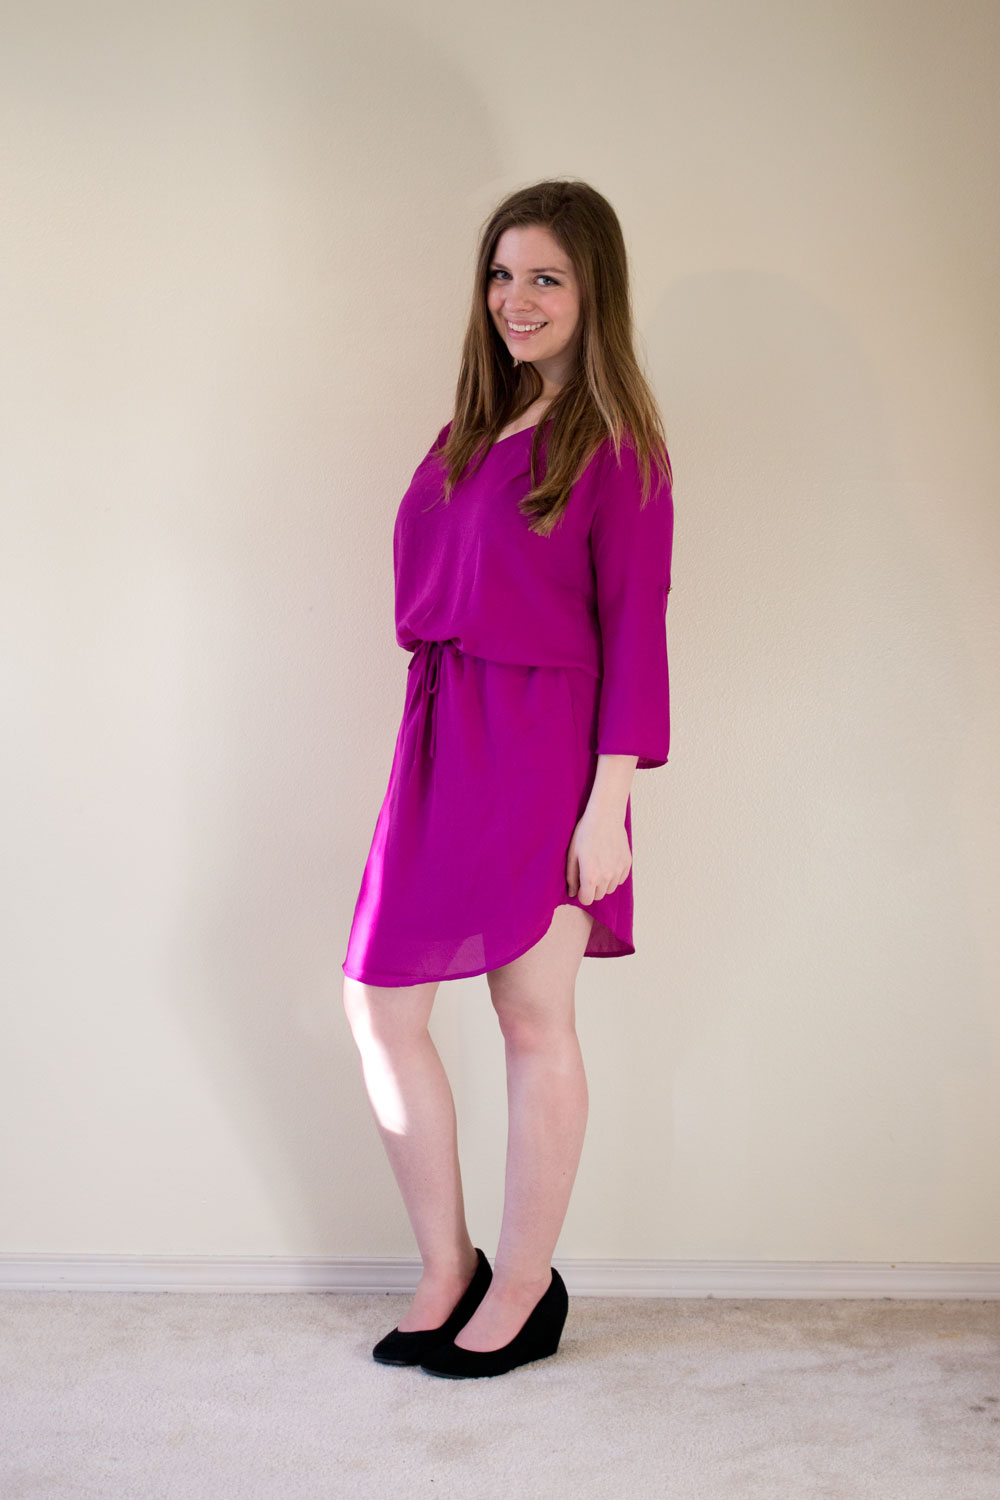 Golden Tote February 2015 Review - Renee C Dropwaisted Drawstring Dress in Pink/Fuchsia / hellorigby seattle fashion and lifestyle blog